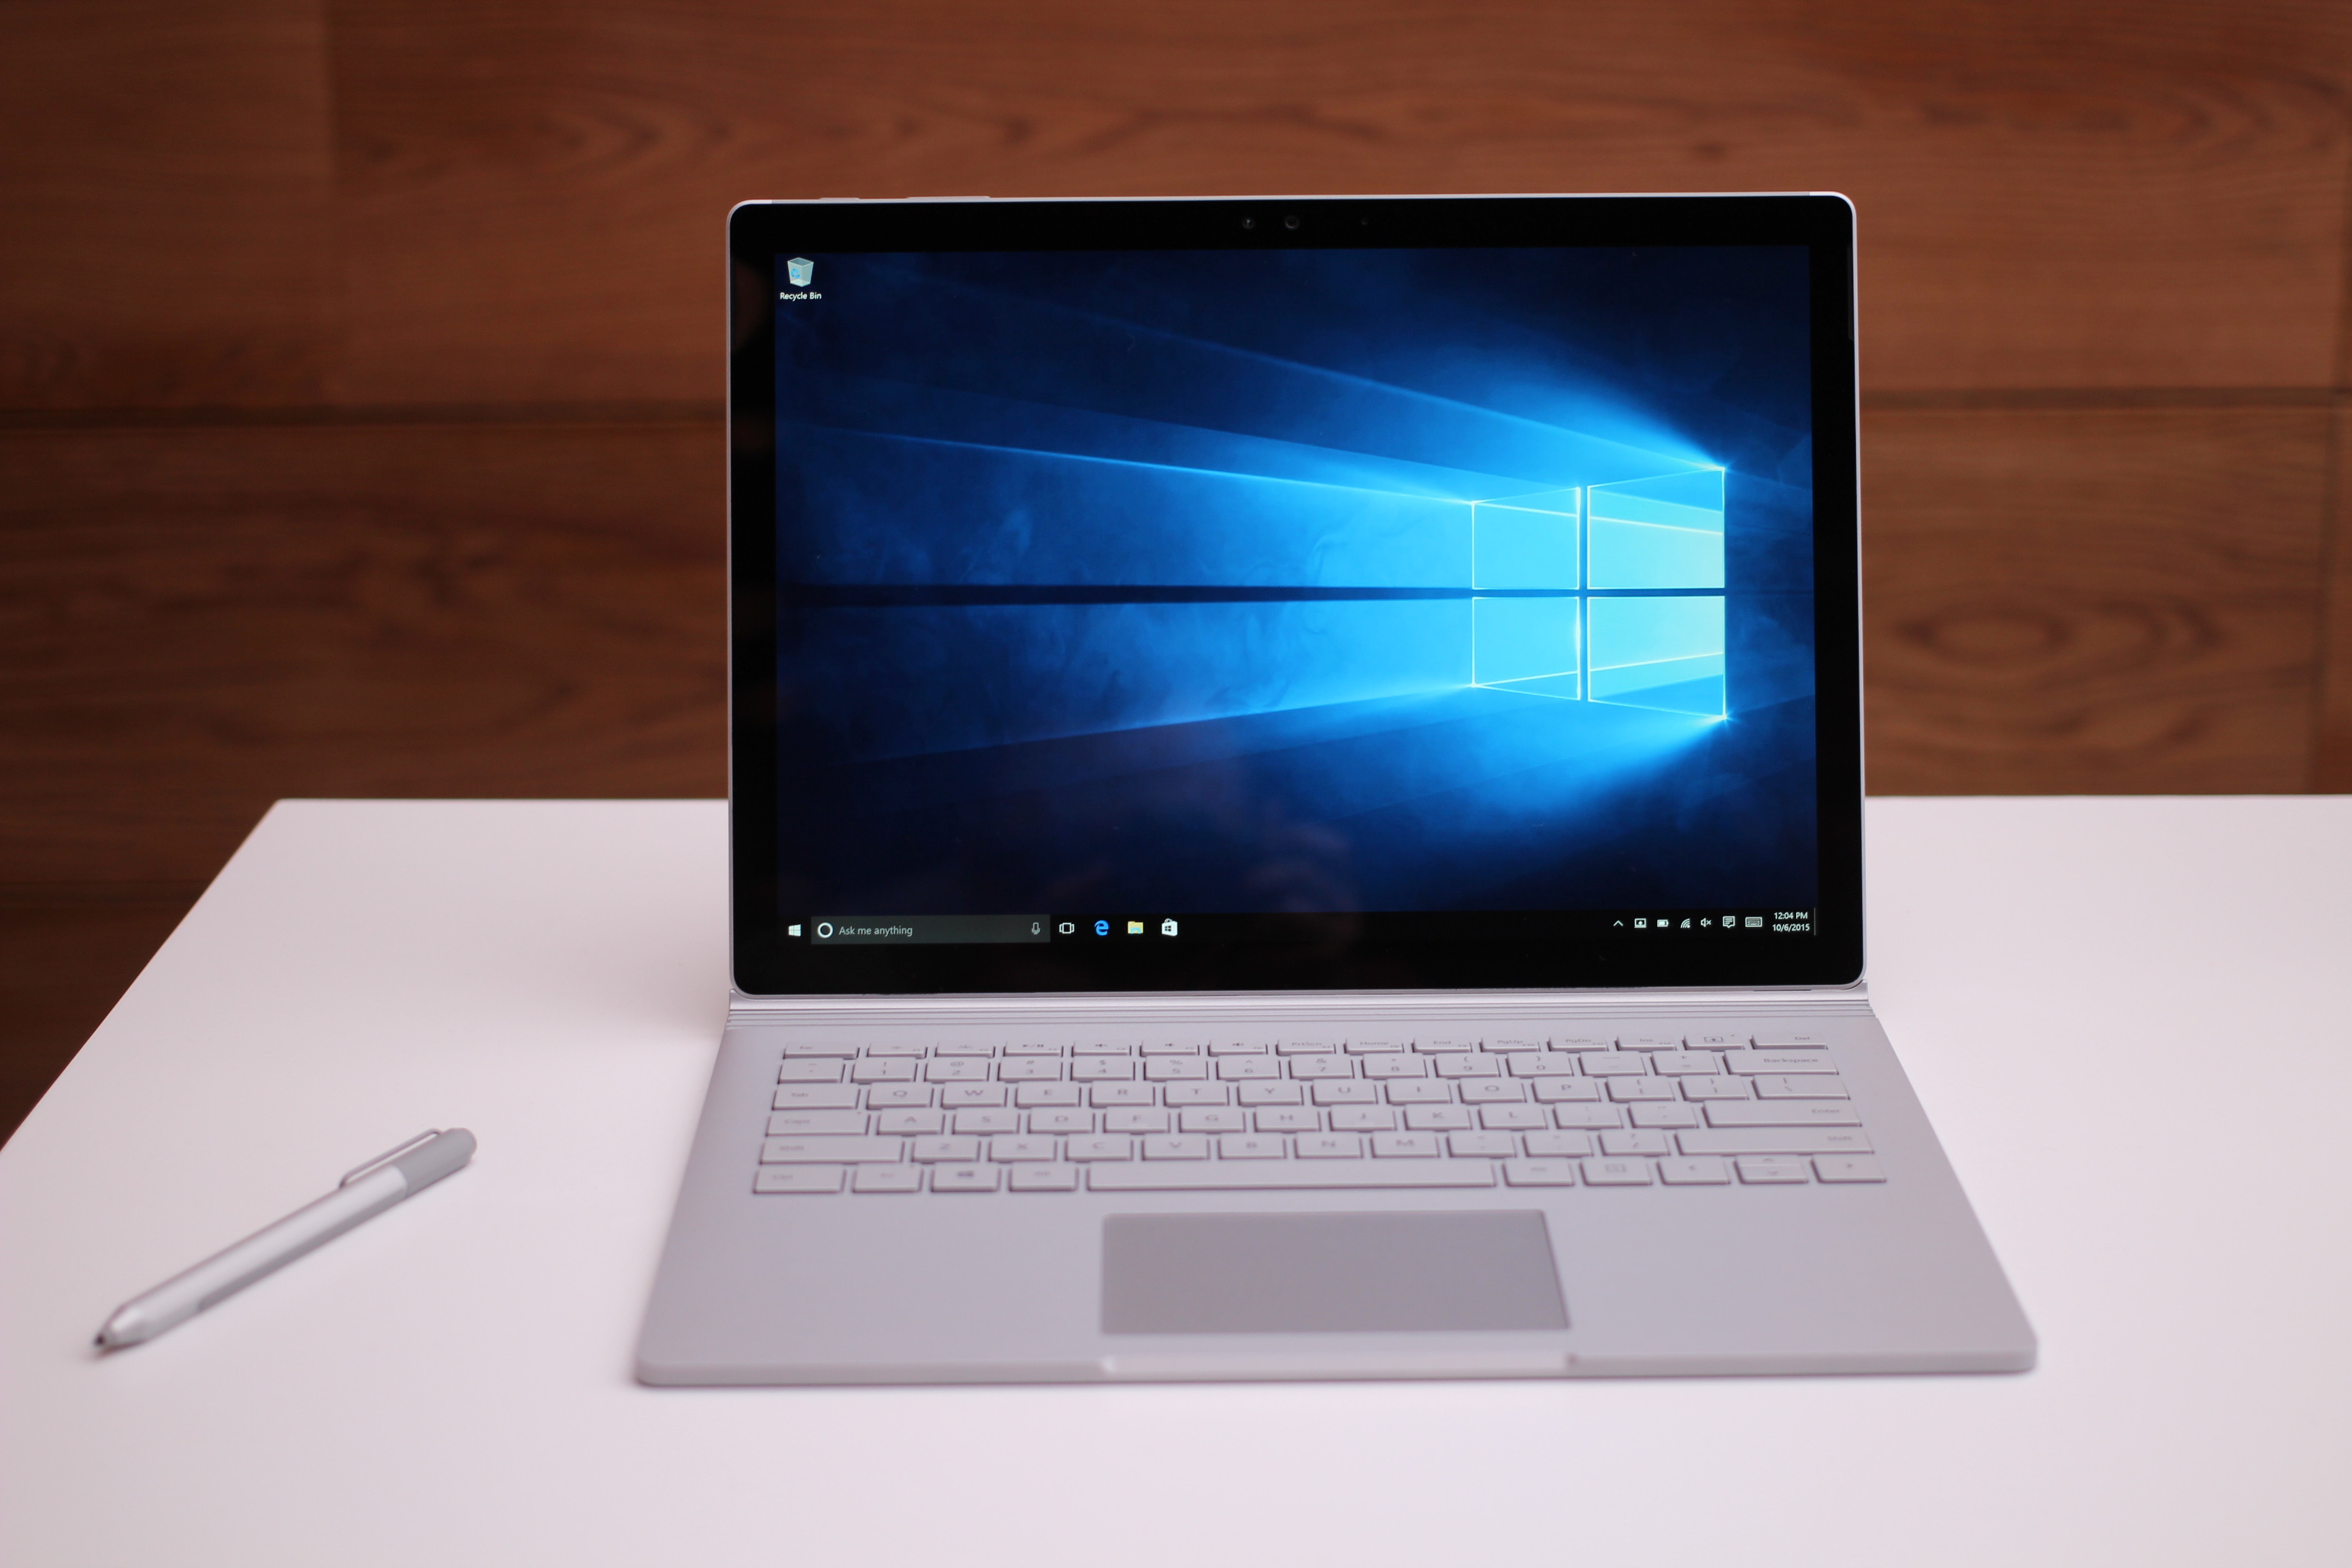 Surface Book 2 13.5 inch – Core i5 / Ram 8GB / SSD 256GB 1